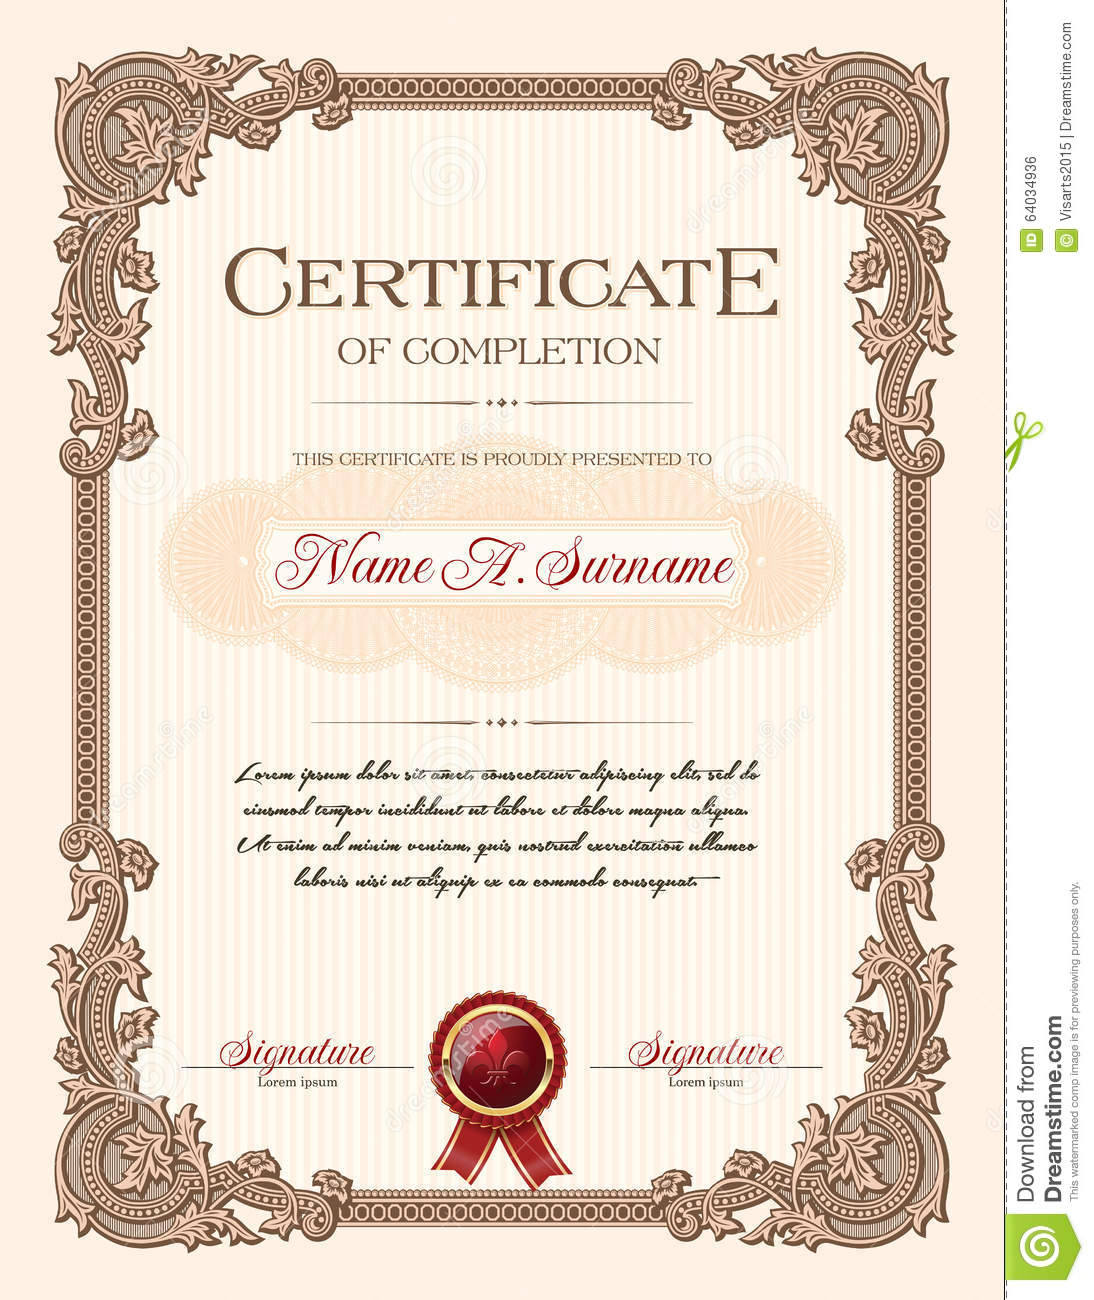 certificate of completion portrait with floral ornament